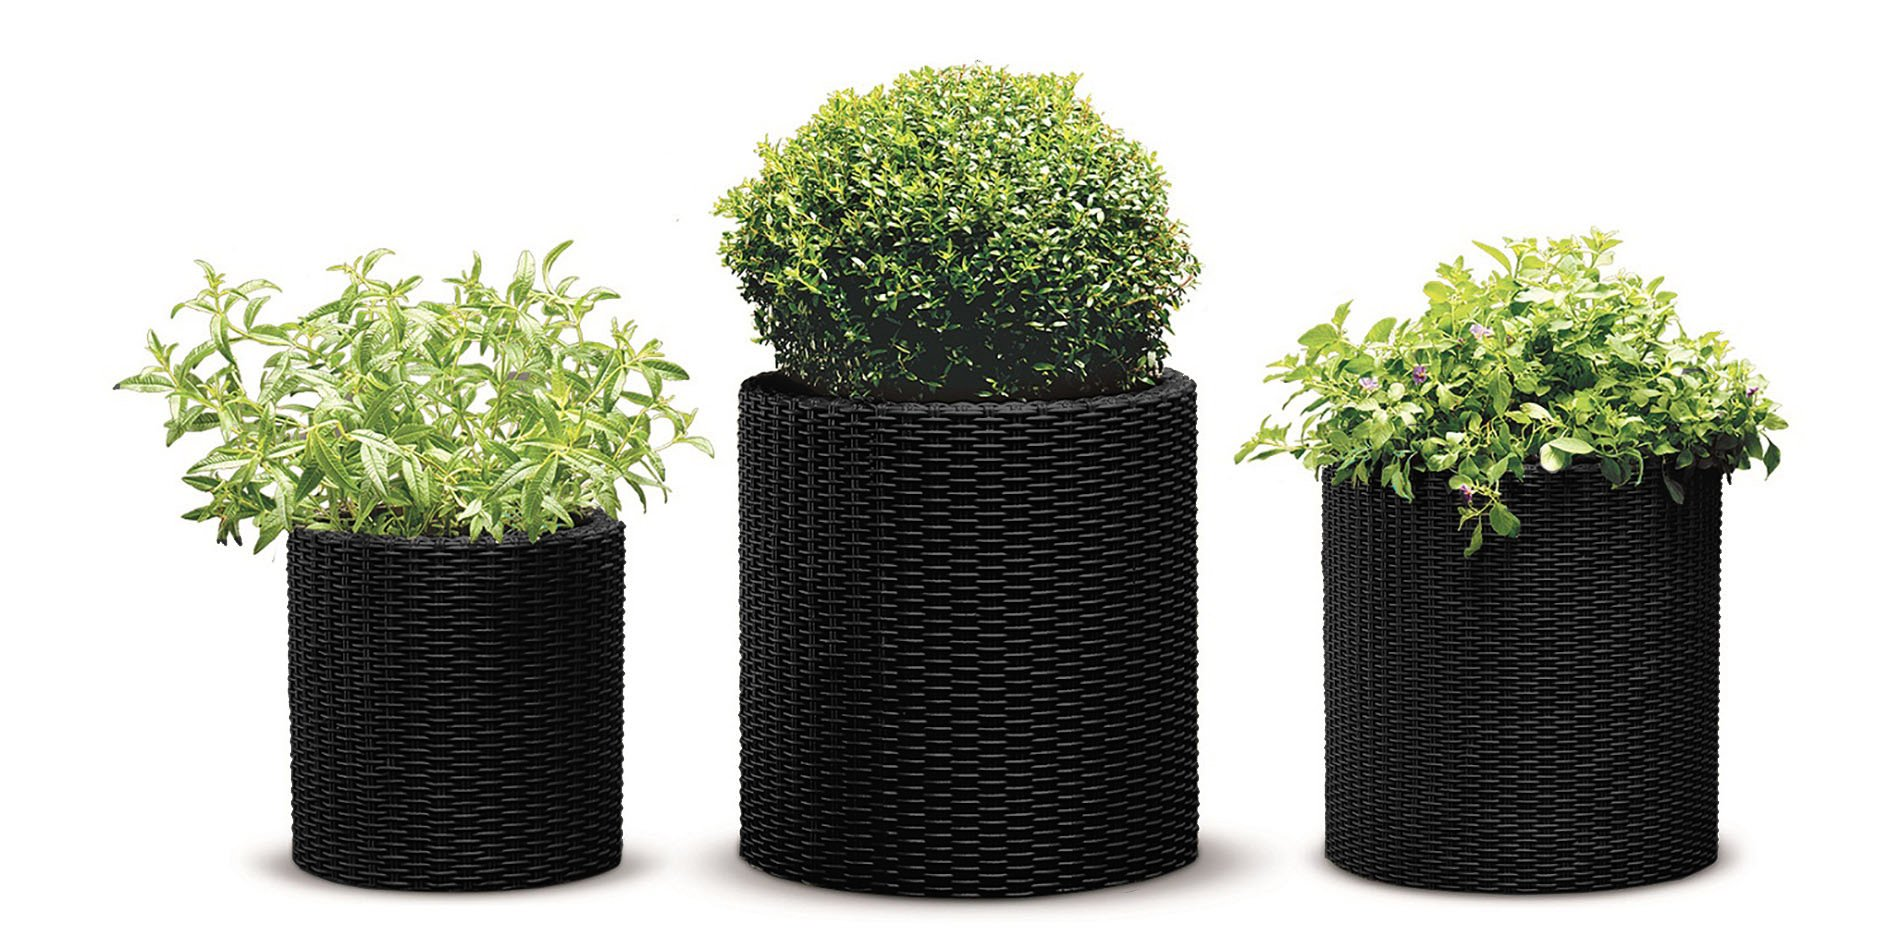 Keter 238672 3 Piece Cylinder Rattan Plastic Planter, Charcoal Grey by Keter